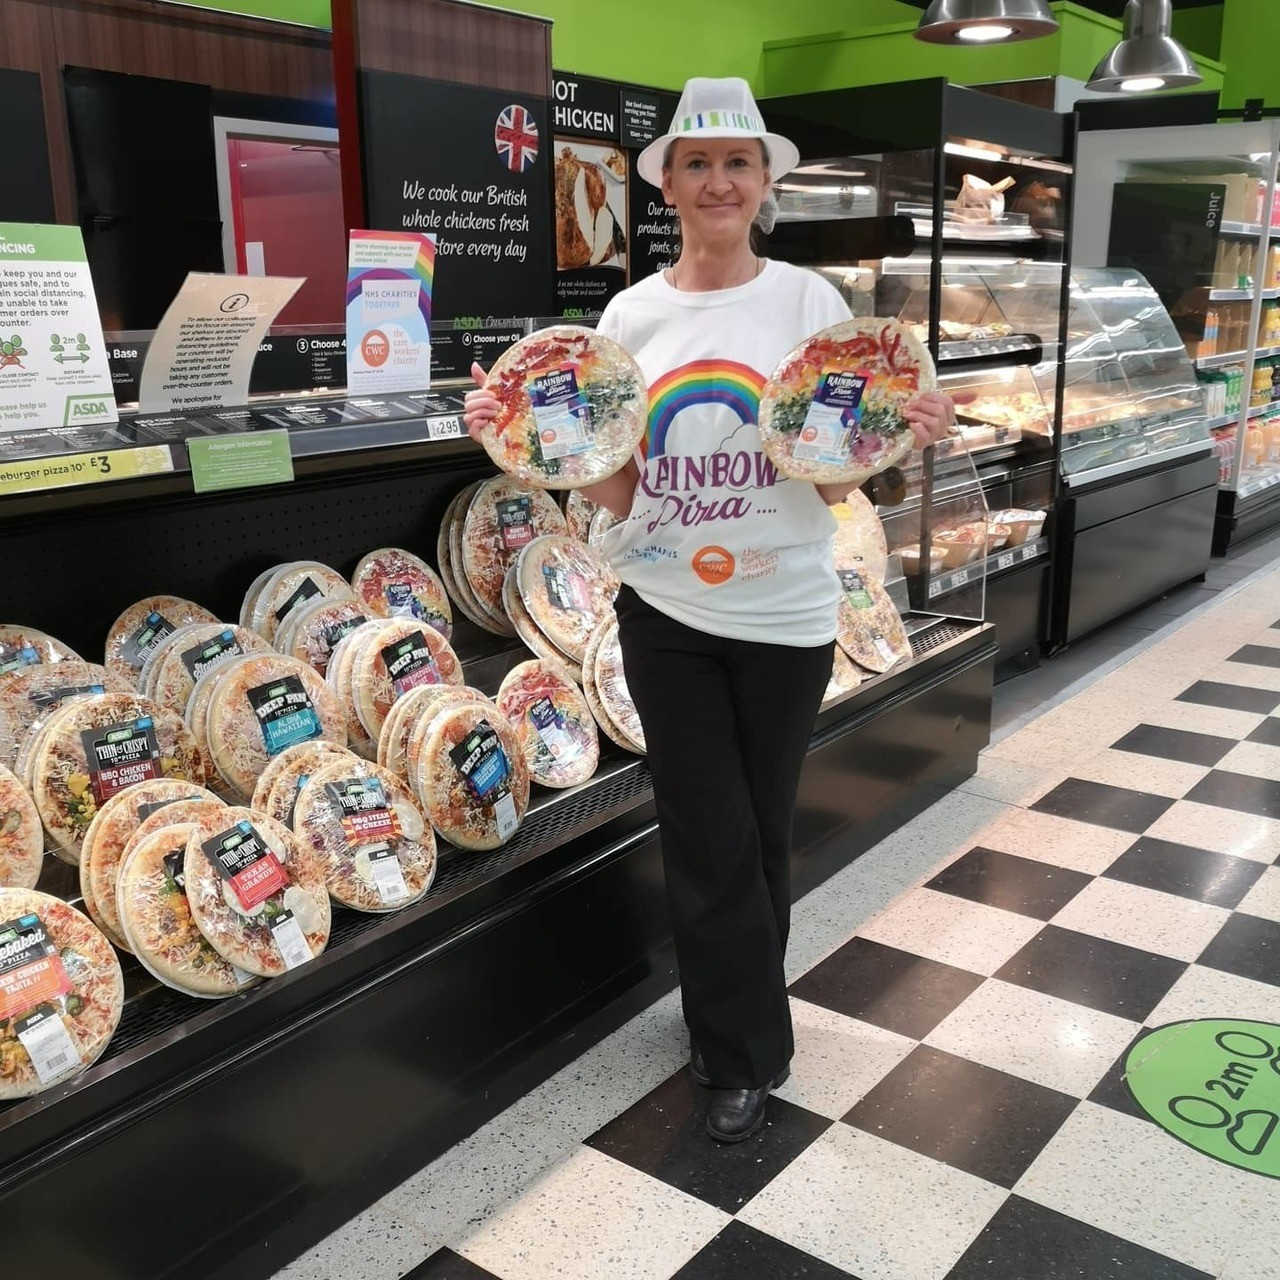 We're showing our thanks and support with our new rainbow pizza.  | Asda Long Eaton